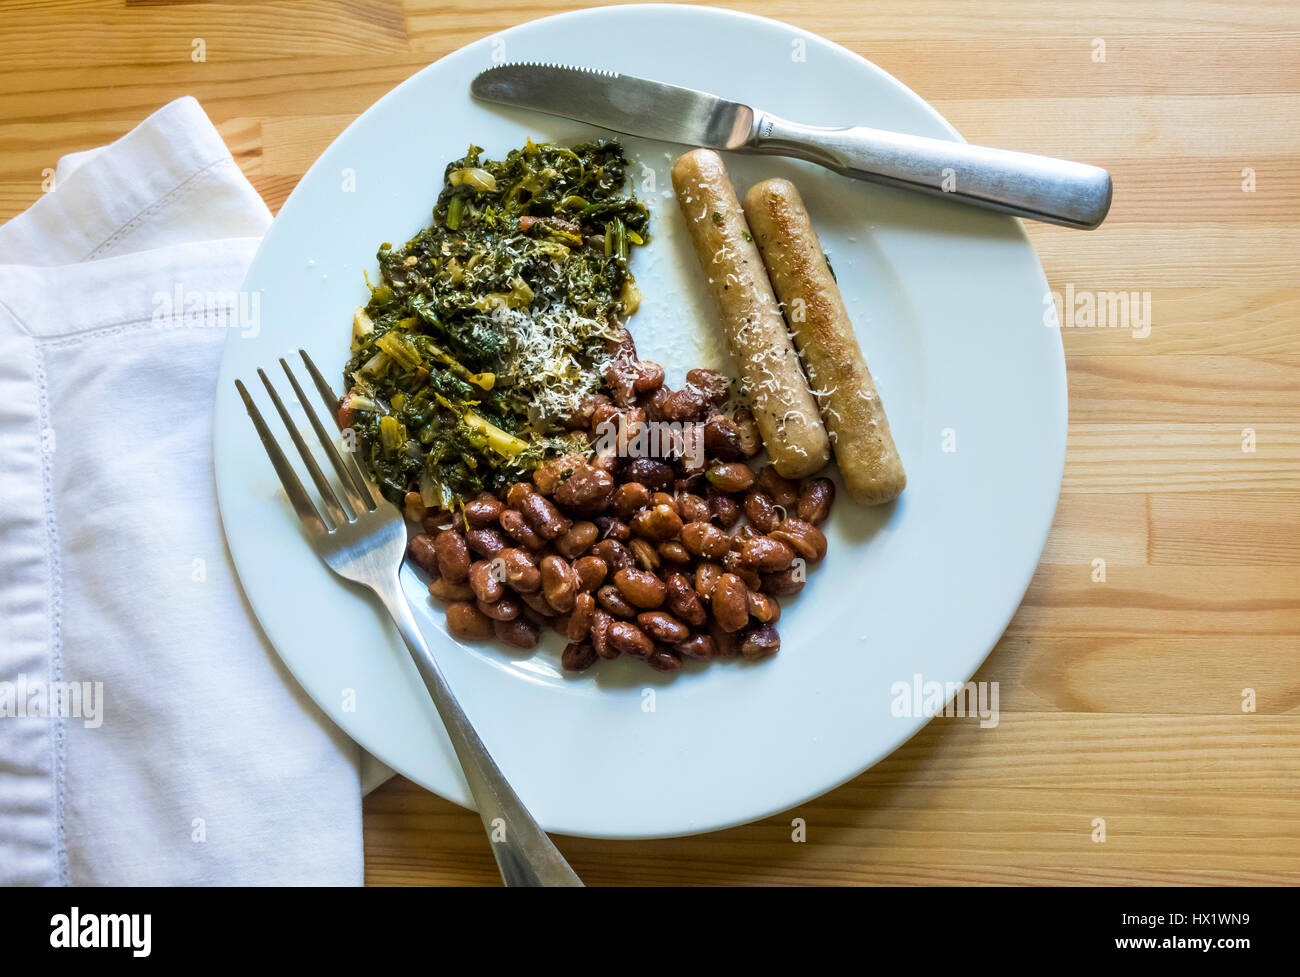 Sausage, pinto beans, and spinach with garlic - Stock Image